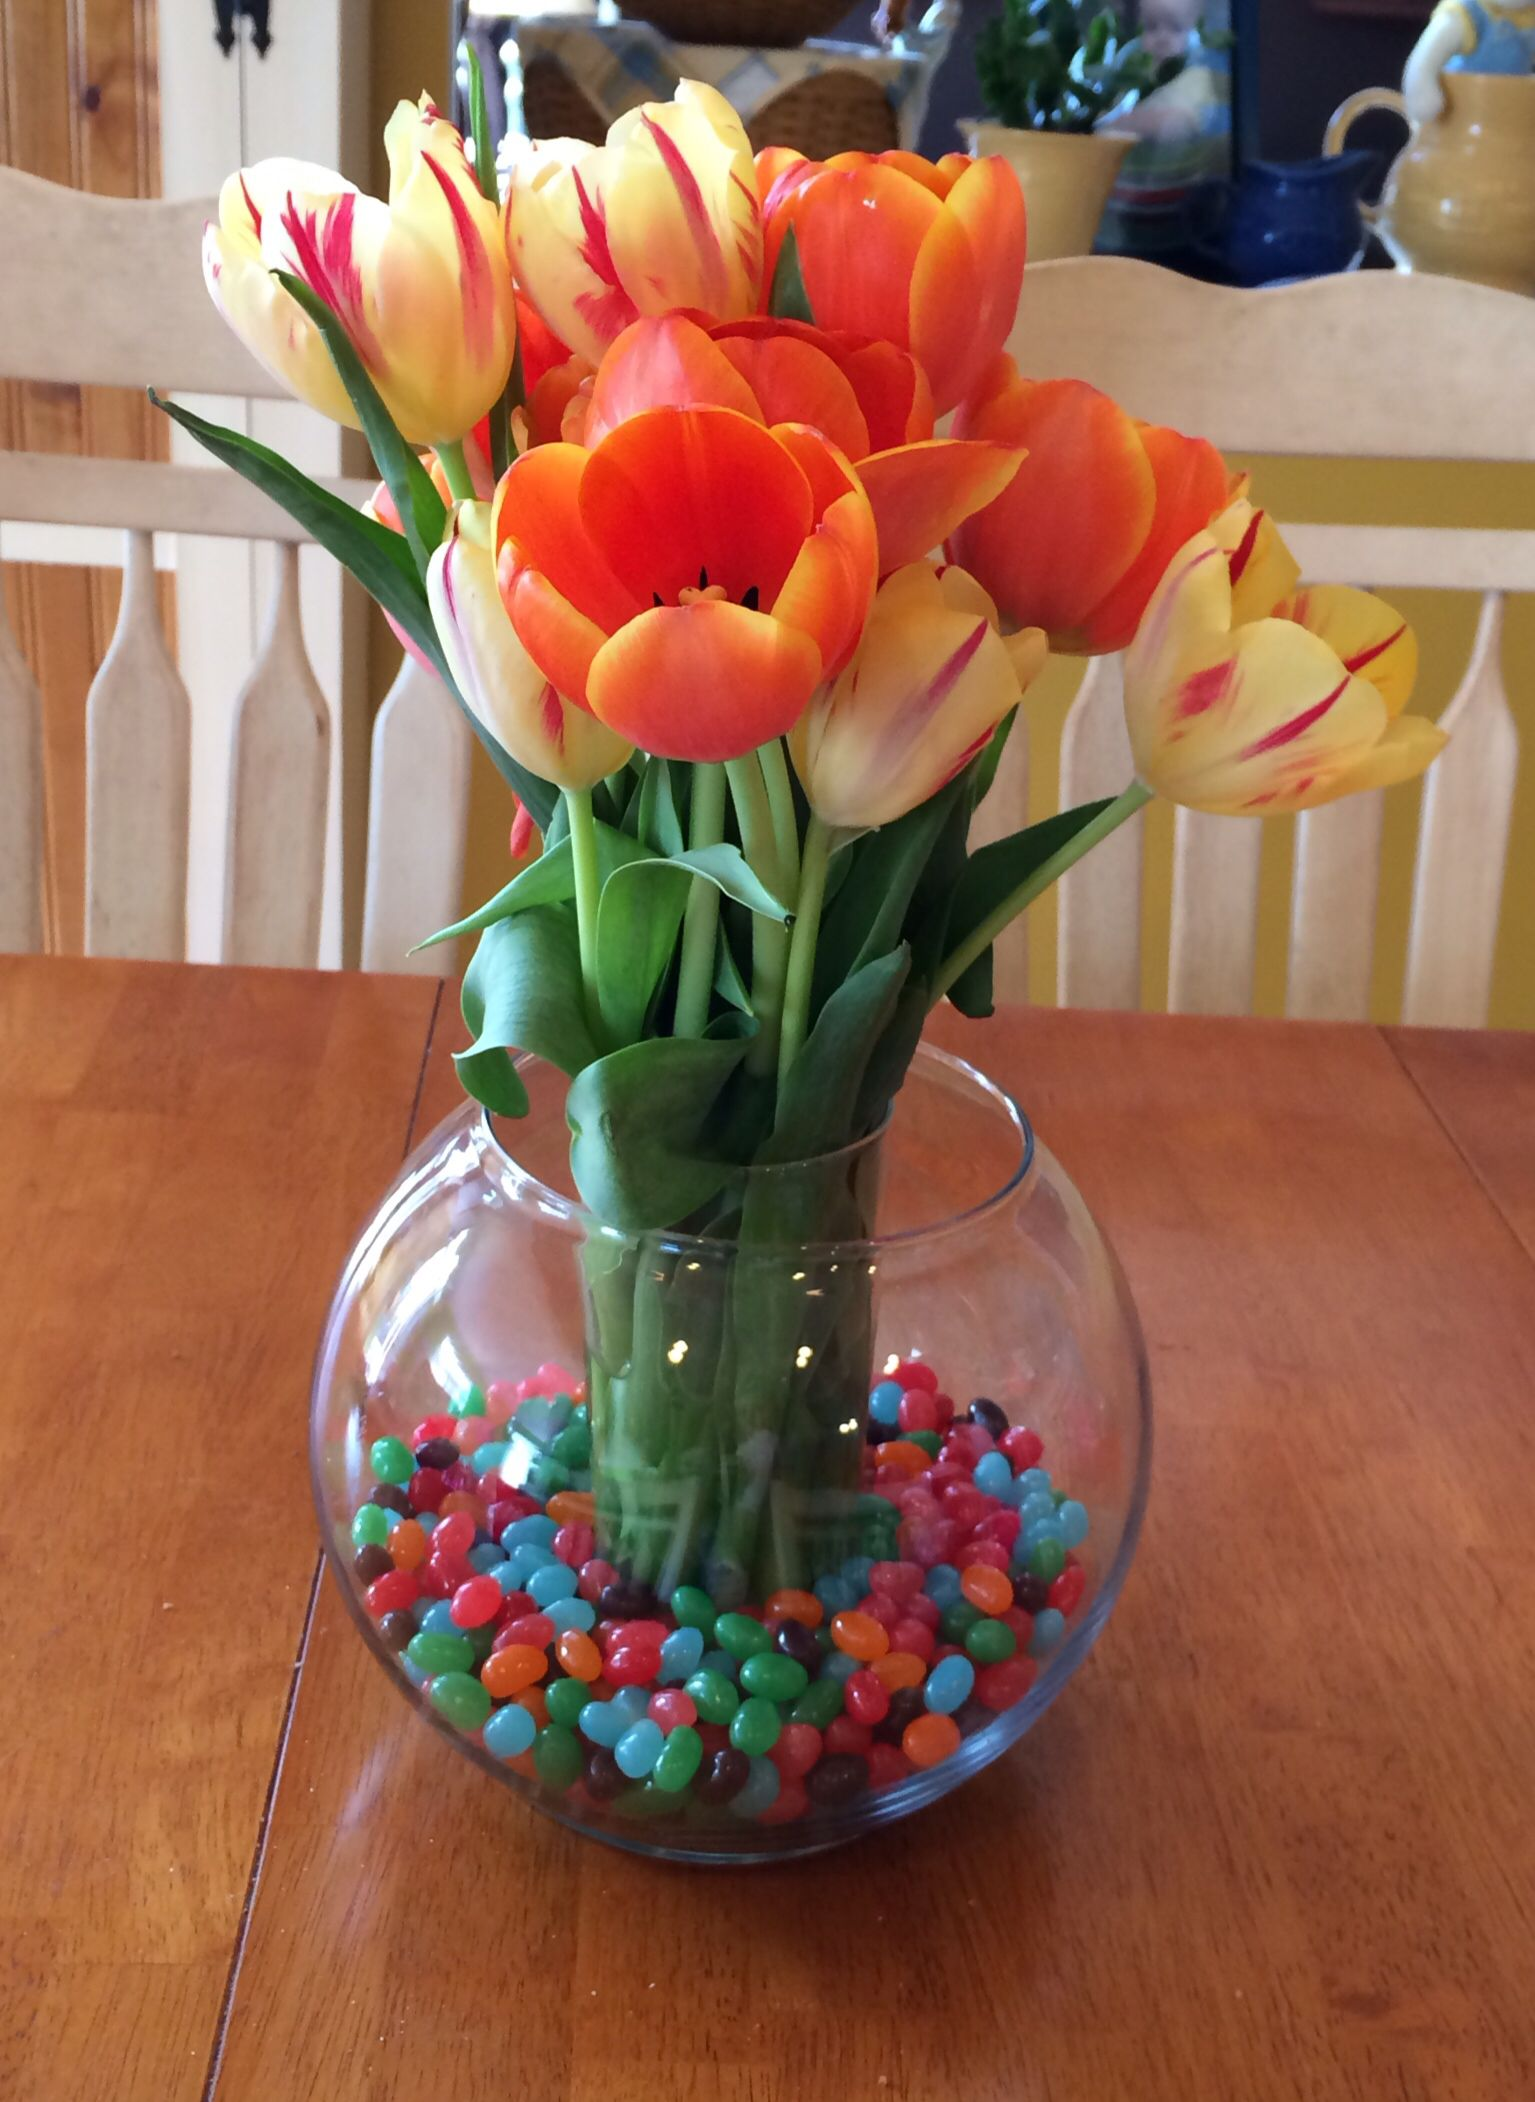 Tulips and Jelly Beans!